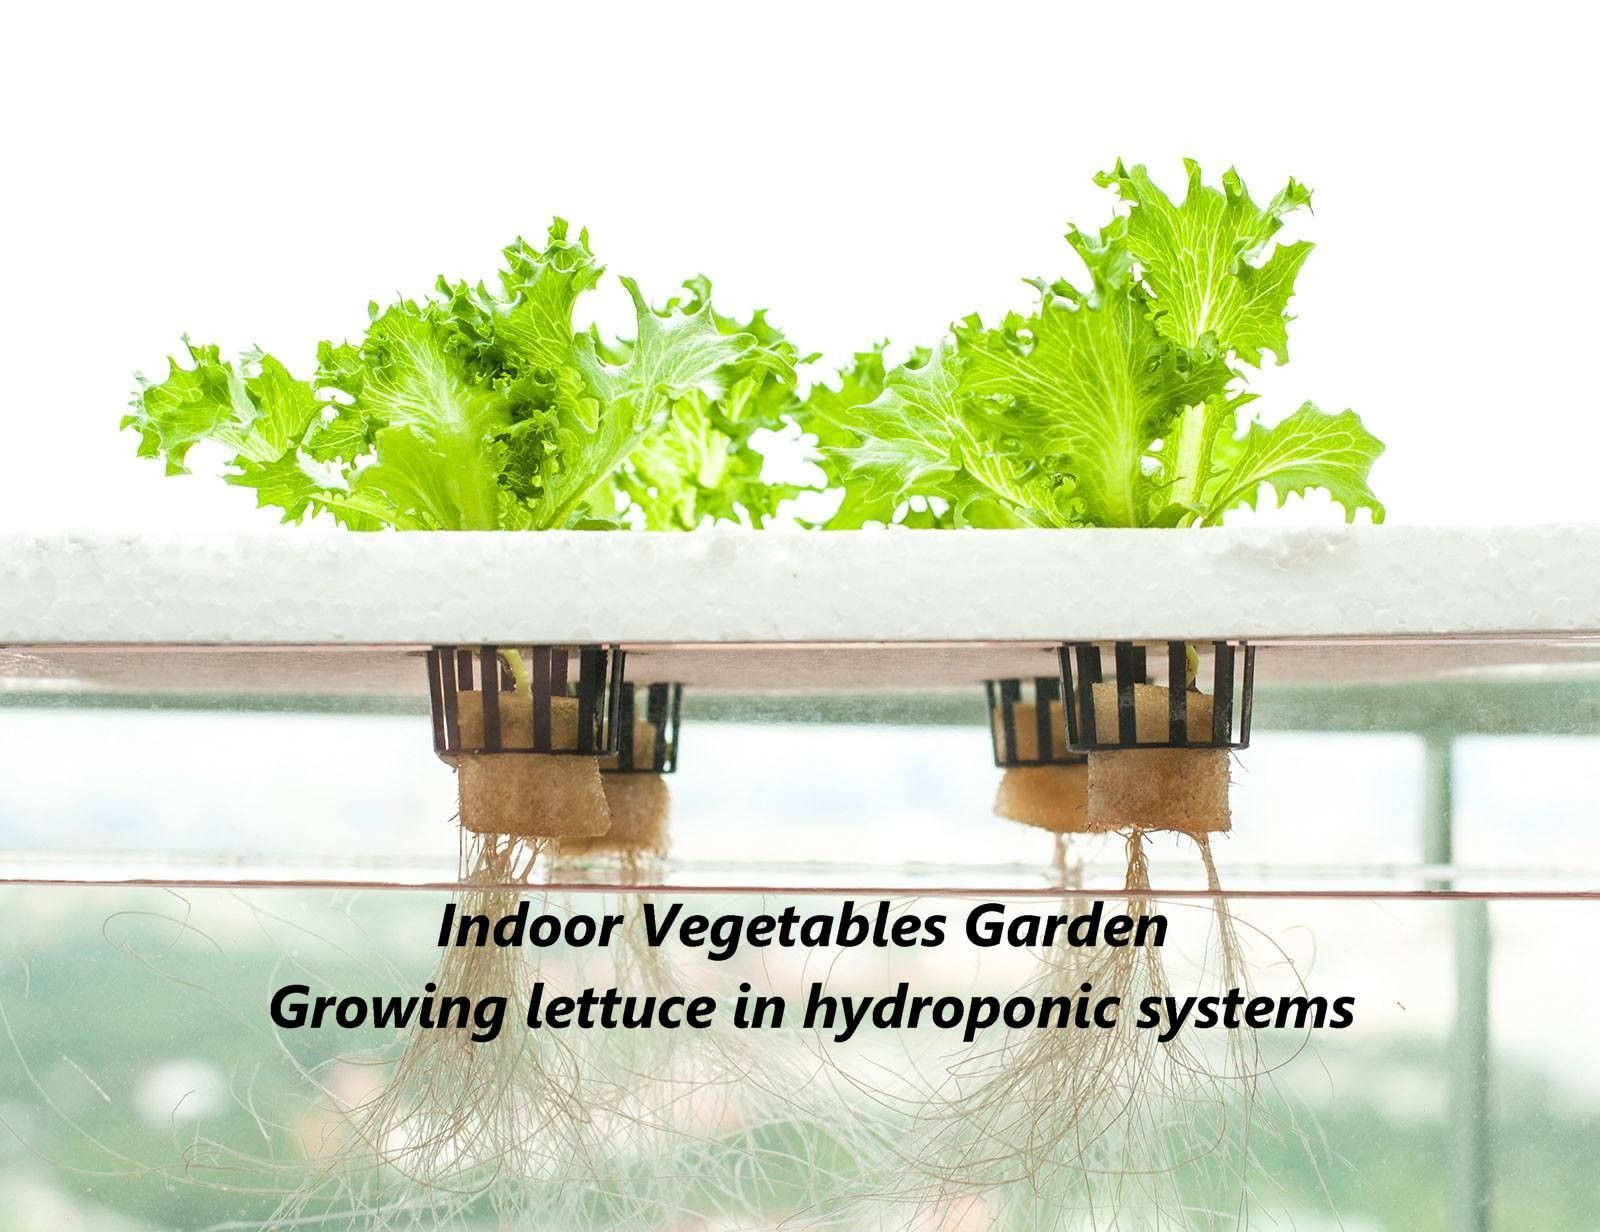 How To Grow Vegetables Indoors Without Soil Hydroponic Farming Hydroponics Aquaponics